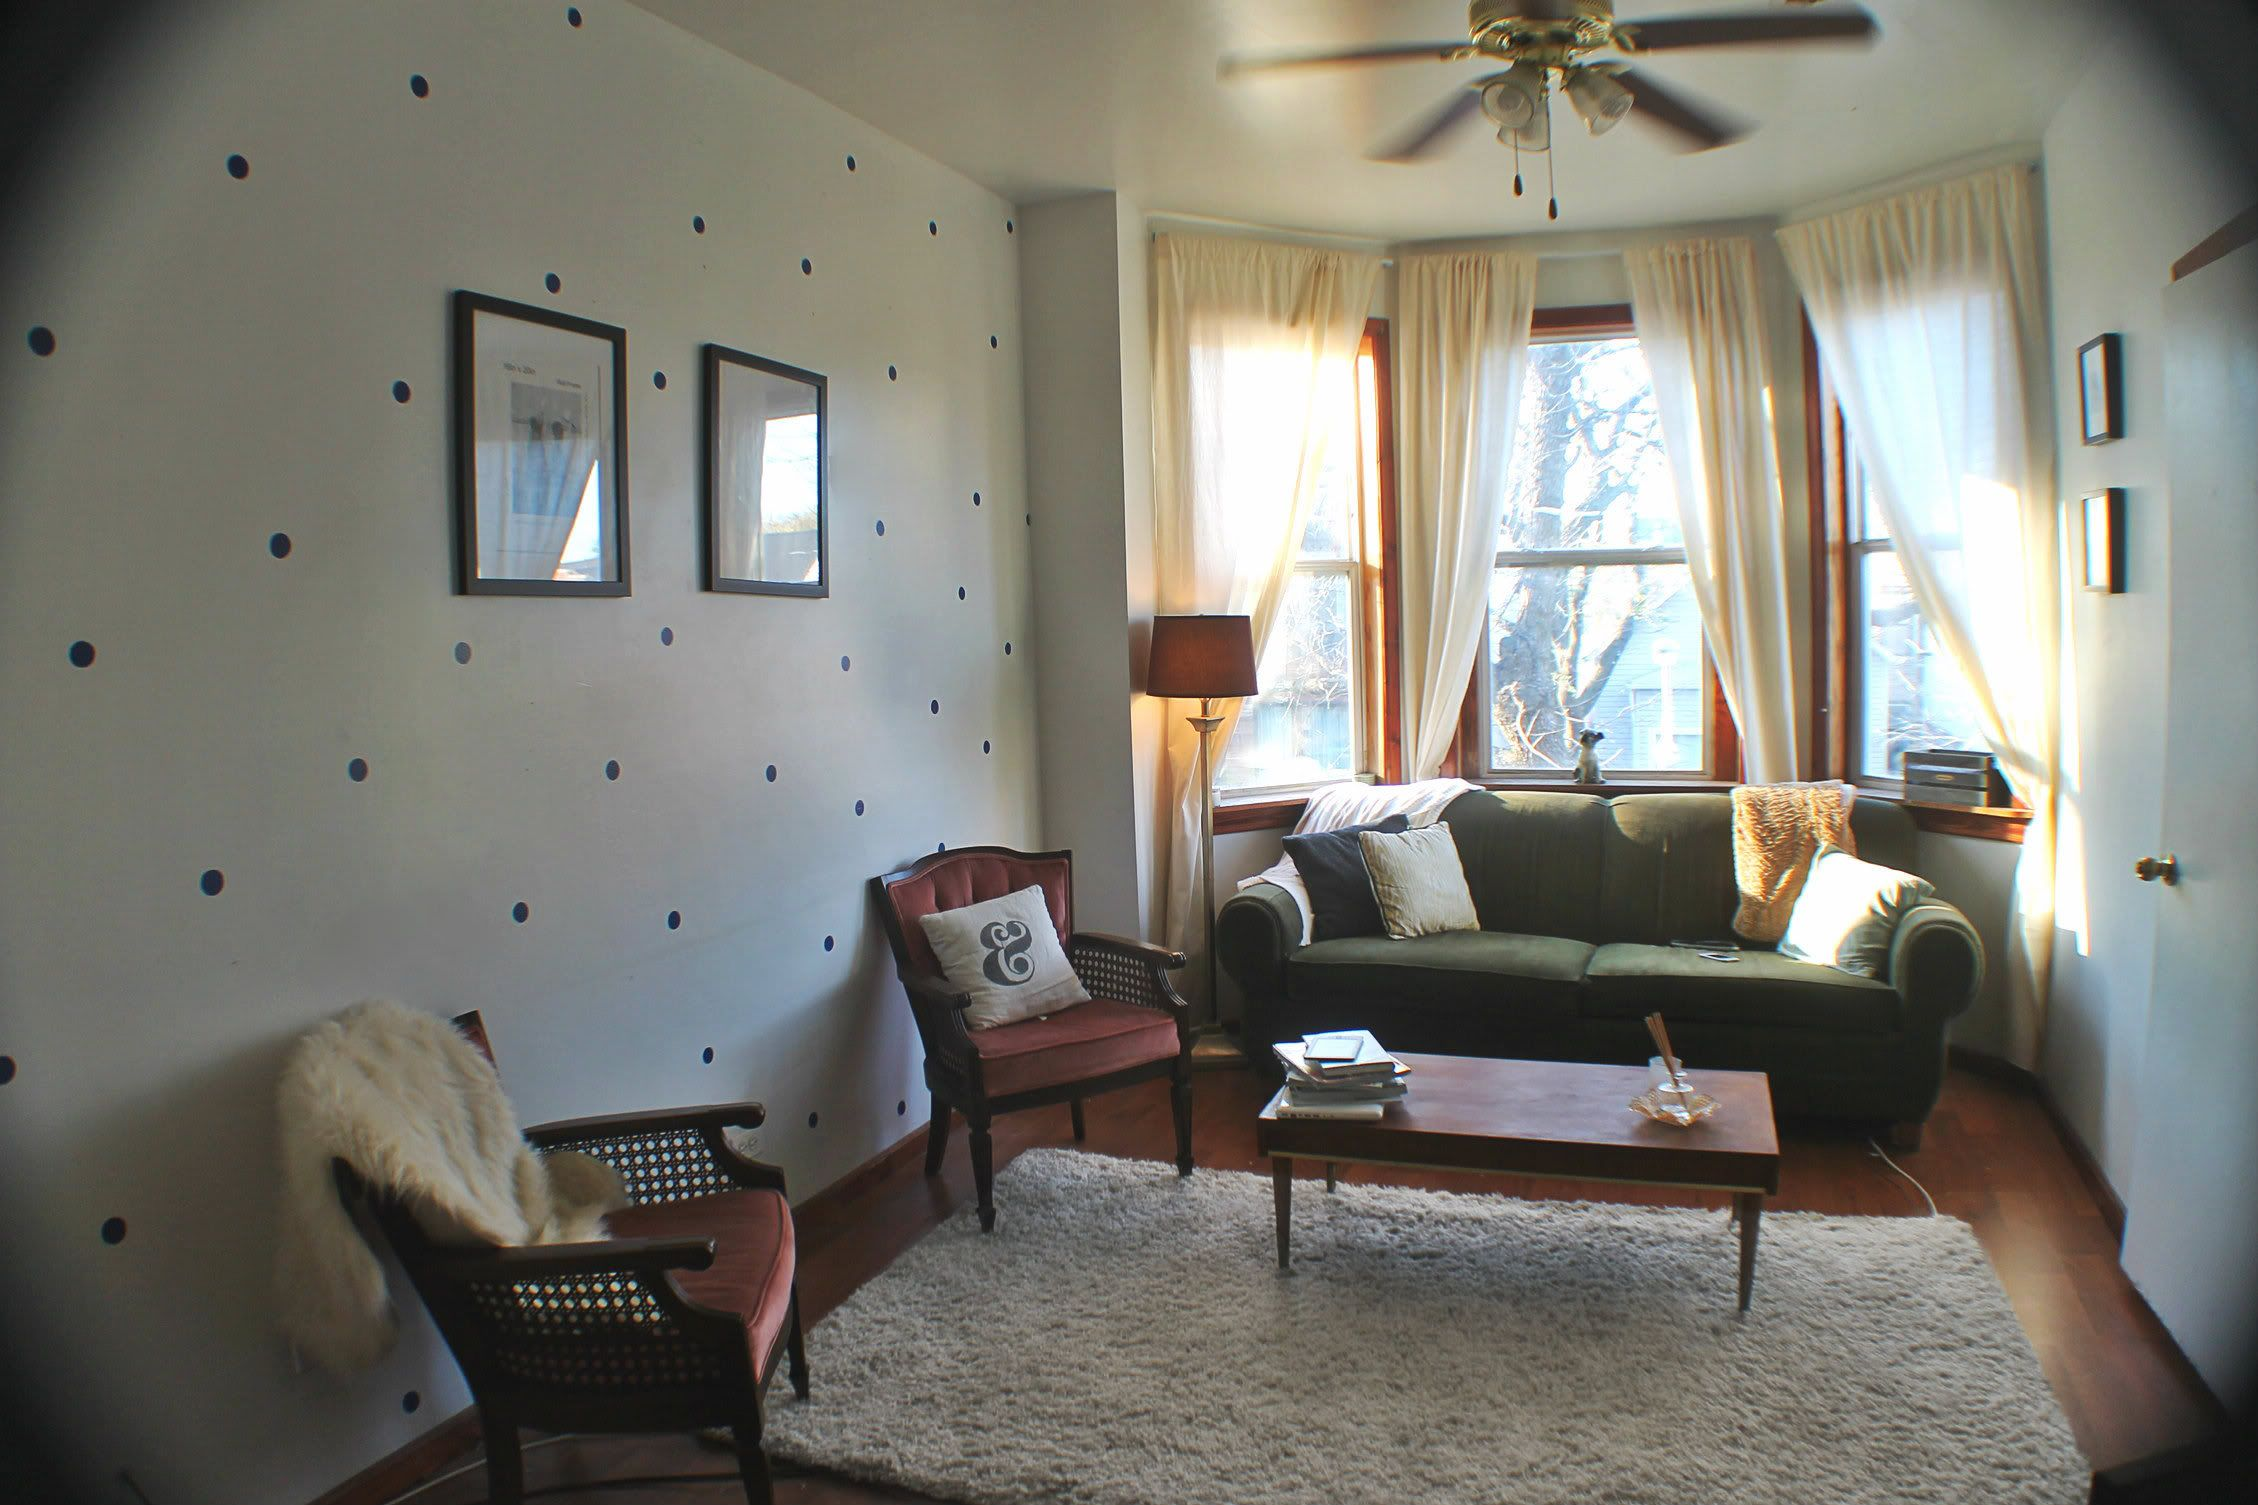 Decorating ideas for living room walls radical possibility dot pattern on living room walls  diy home